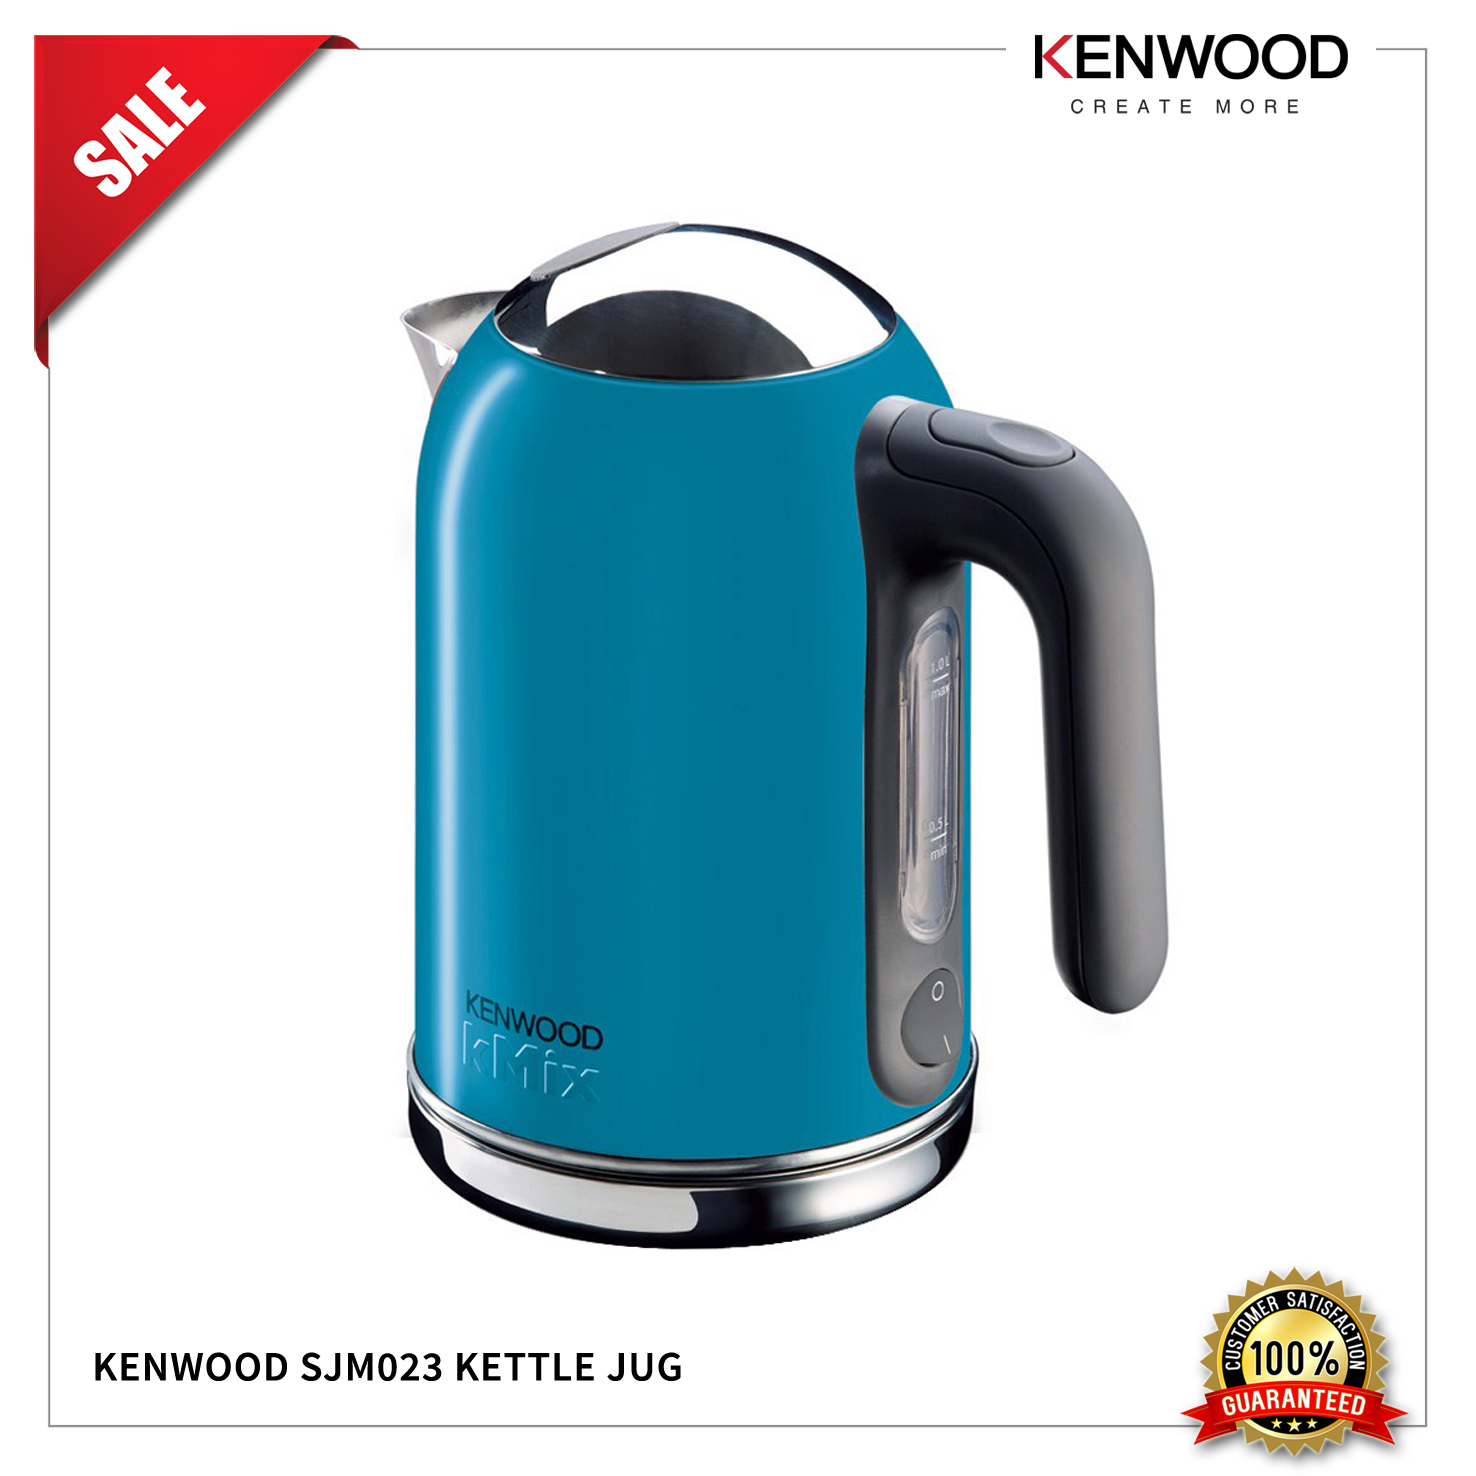 KENWOOD SJM023 KETTLEJUG METAL_BLUE – REVISI 2